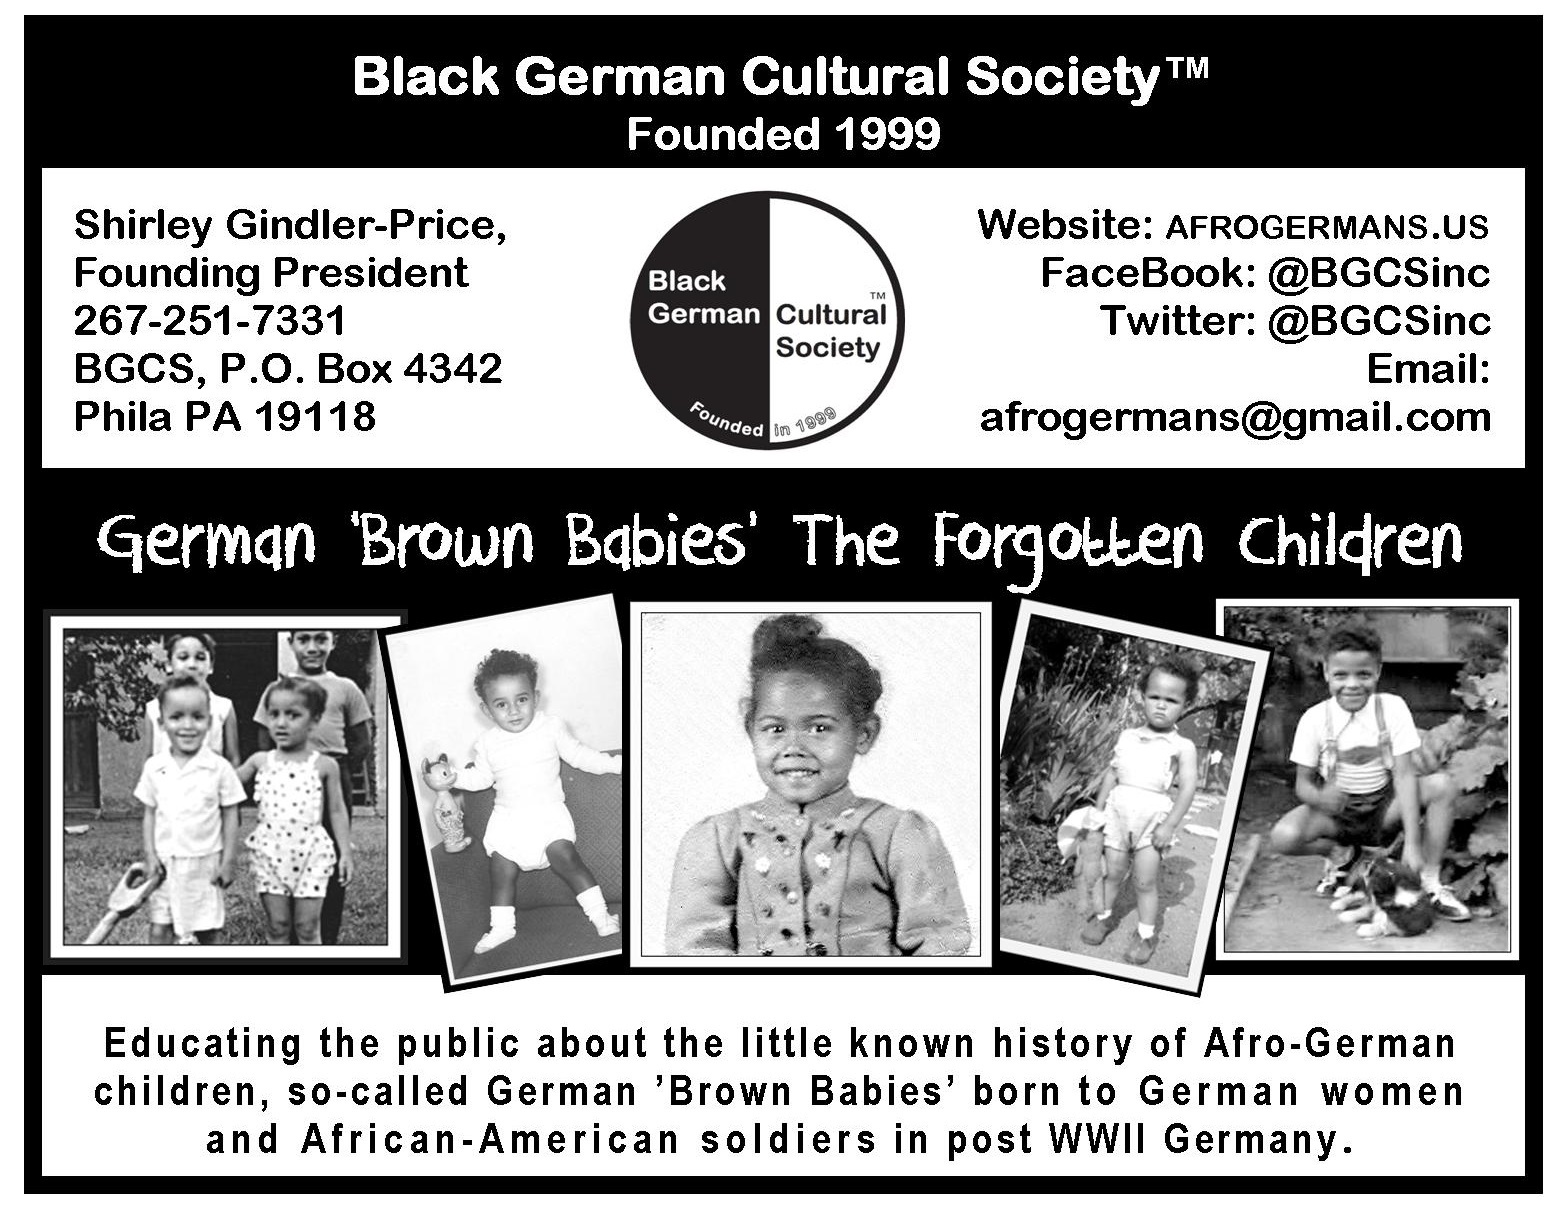 German 'Brown Babies' | Black German Cultural Society™